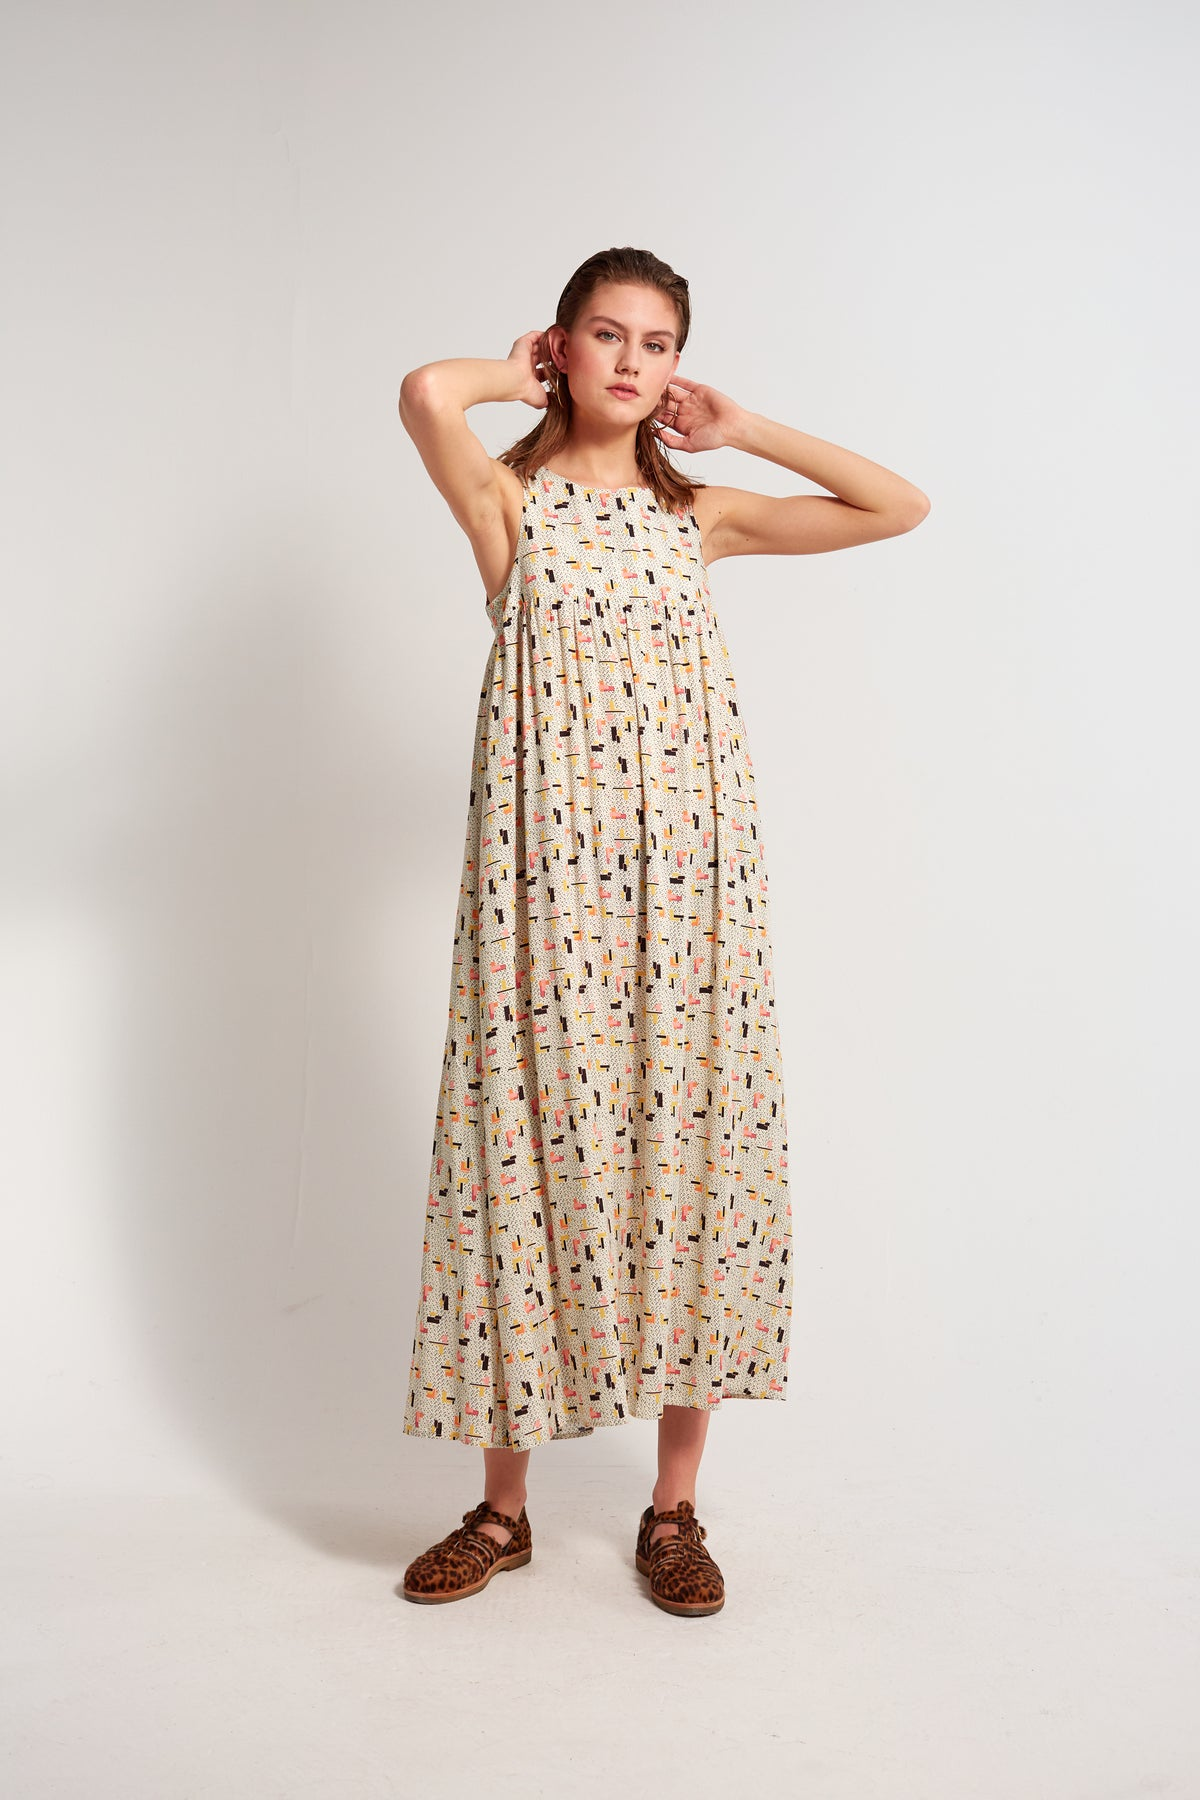 Sperone summer dress in tetris print